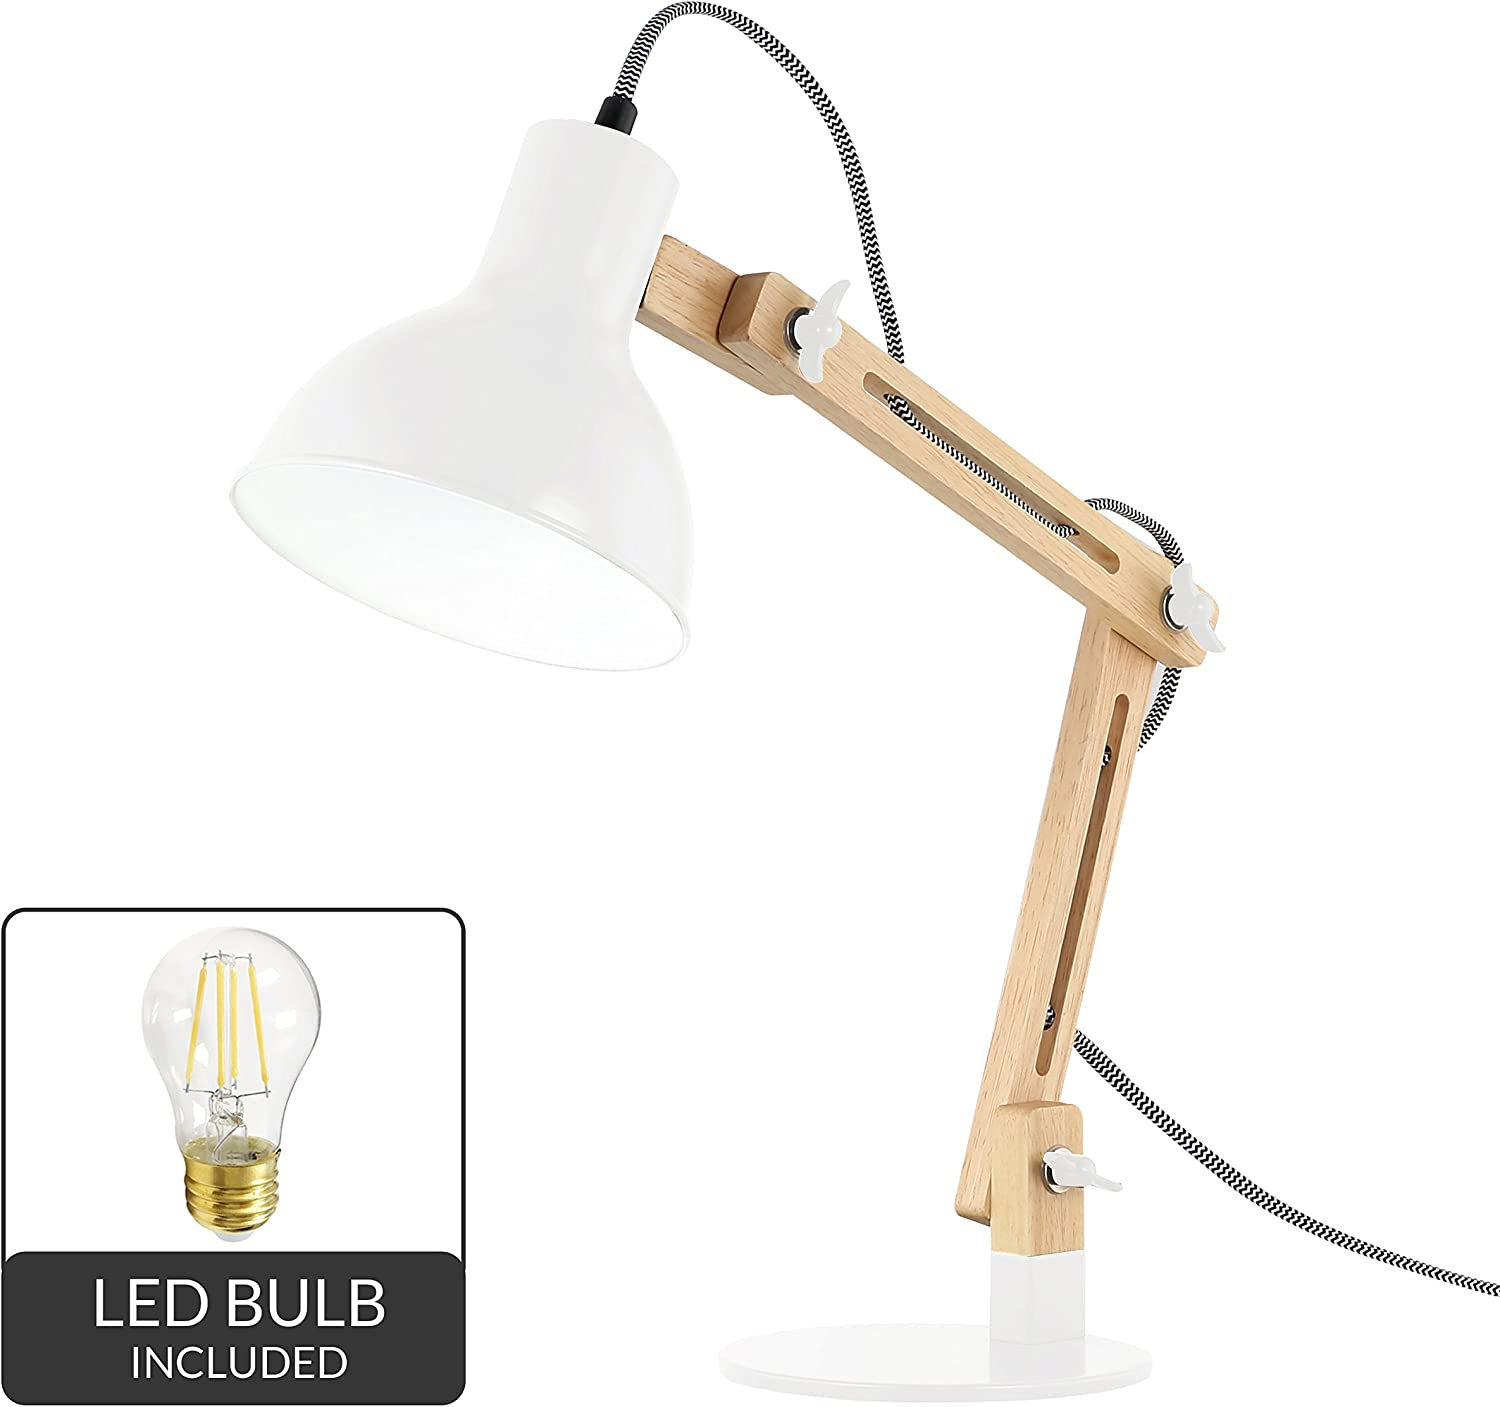 Light Society Galvan LED Task Table Lamp Natural Wood with White Shade, Industrial Pixar Style Modern Desk Lamp Light (LS-T229-WHI)